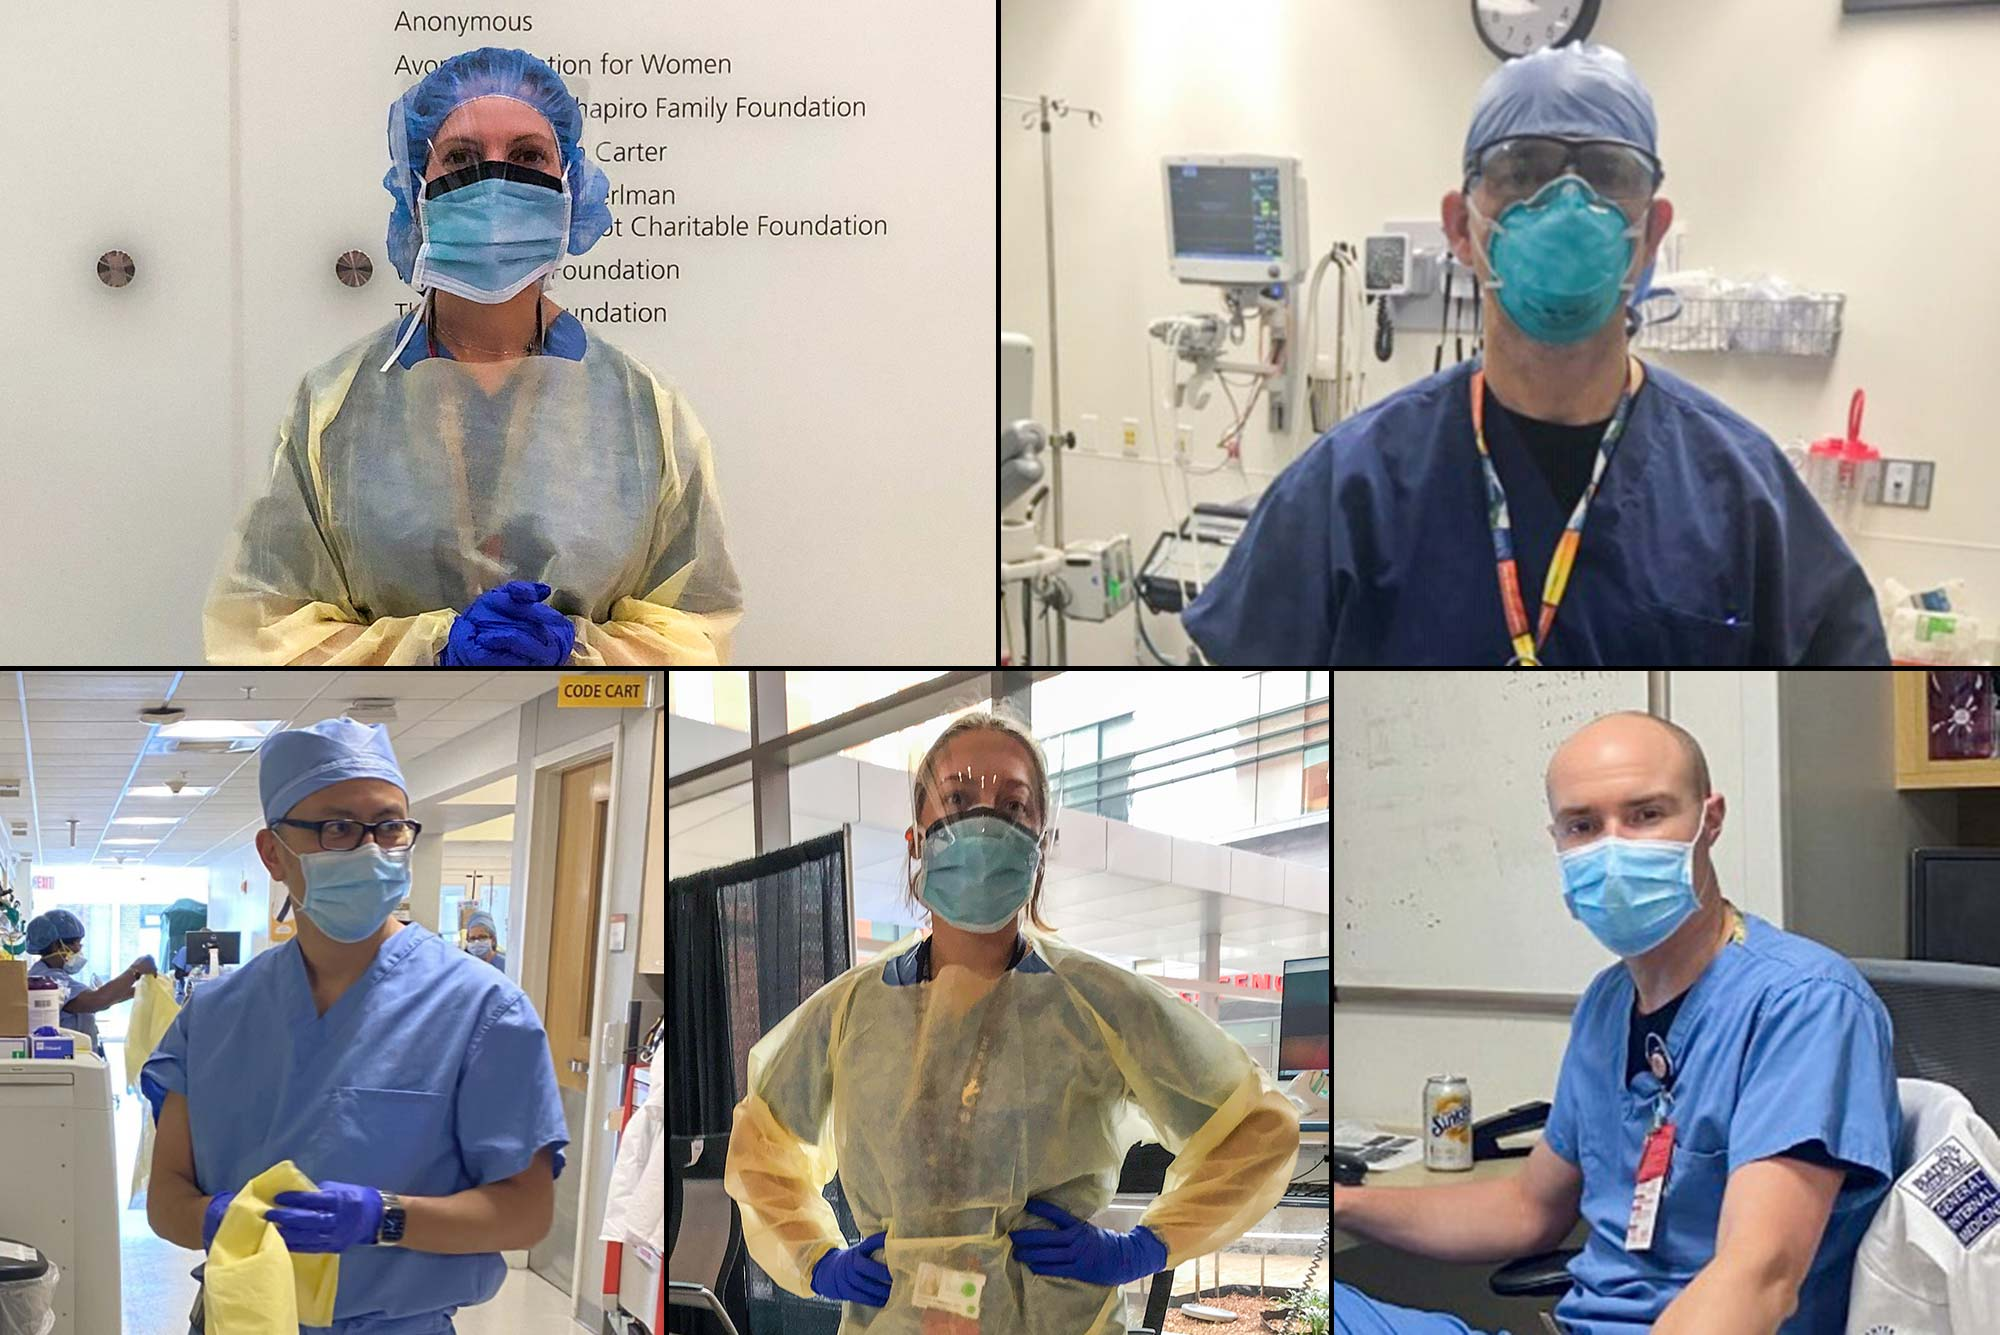 Composite image of photos of Boston Medical Center doctors Kristen Goodell, Evan Berg, Michael Ieong, Sarah Kimball, and James Hudspeth